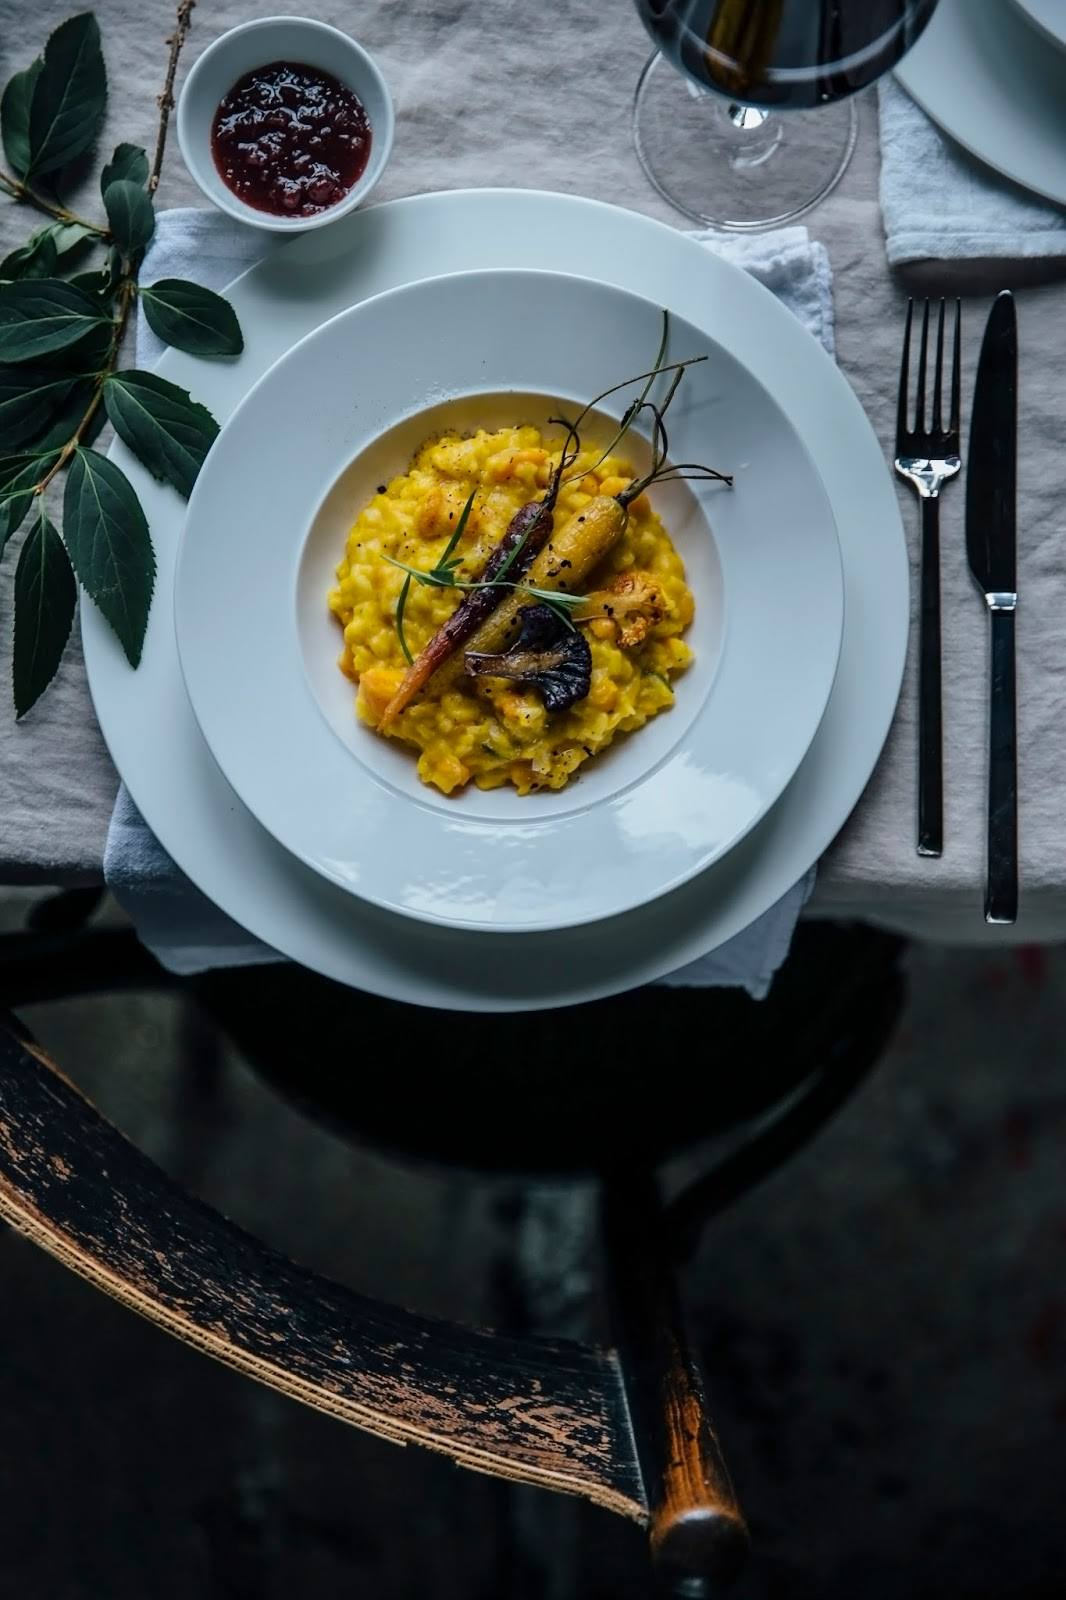 Pumpkin-Risotto with caramelized Carrots and Cauliflowers: our third Gathering for Villeroy&Boch